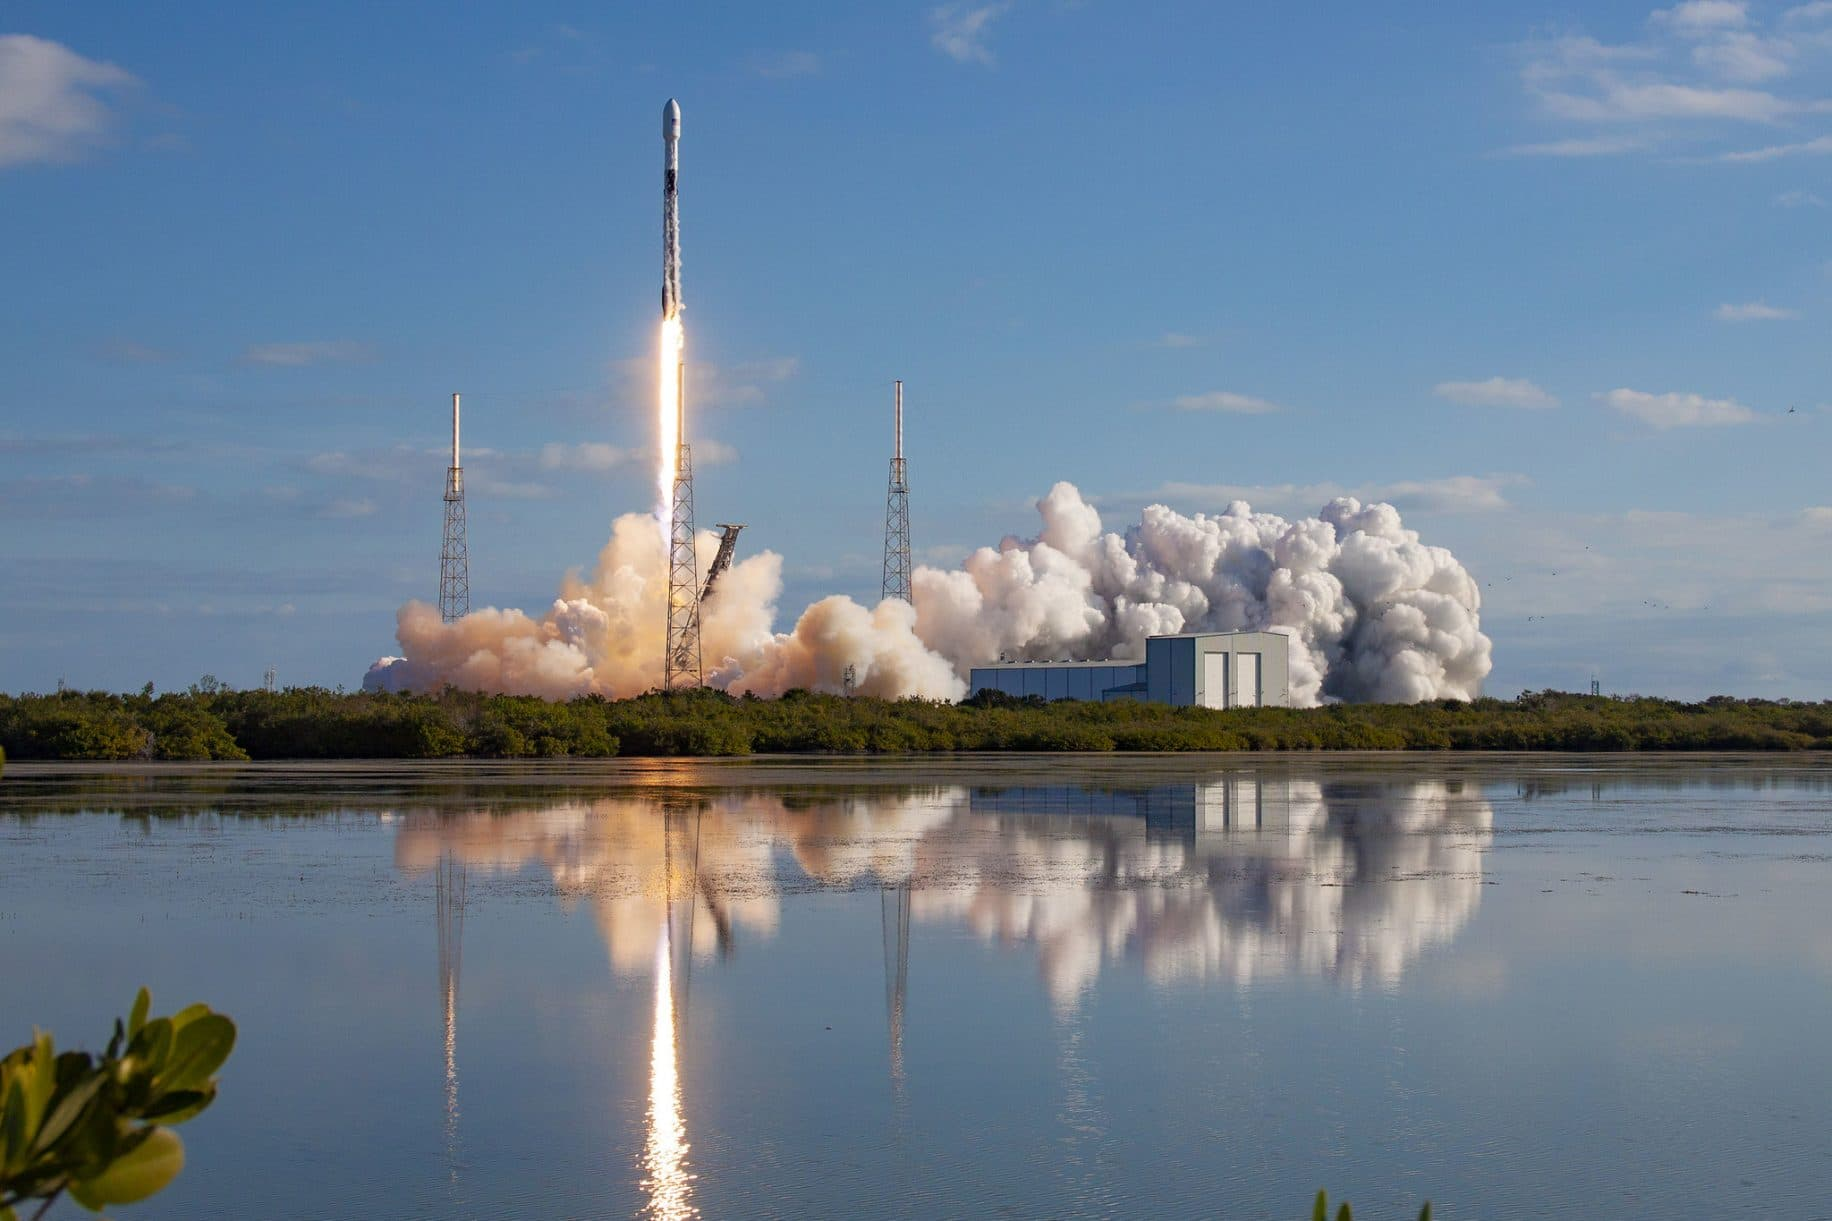 SpaceX set to launch another 60 internet Starlink satellites Saturday, taking total constellation to 300